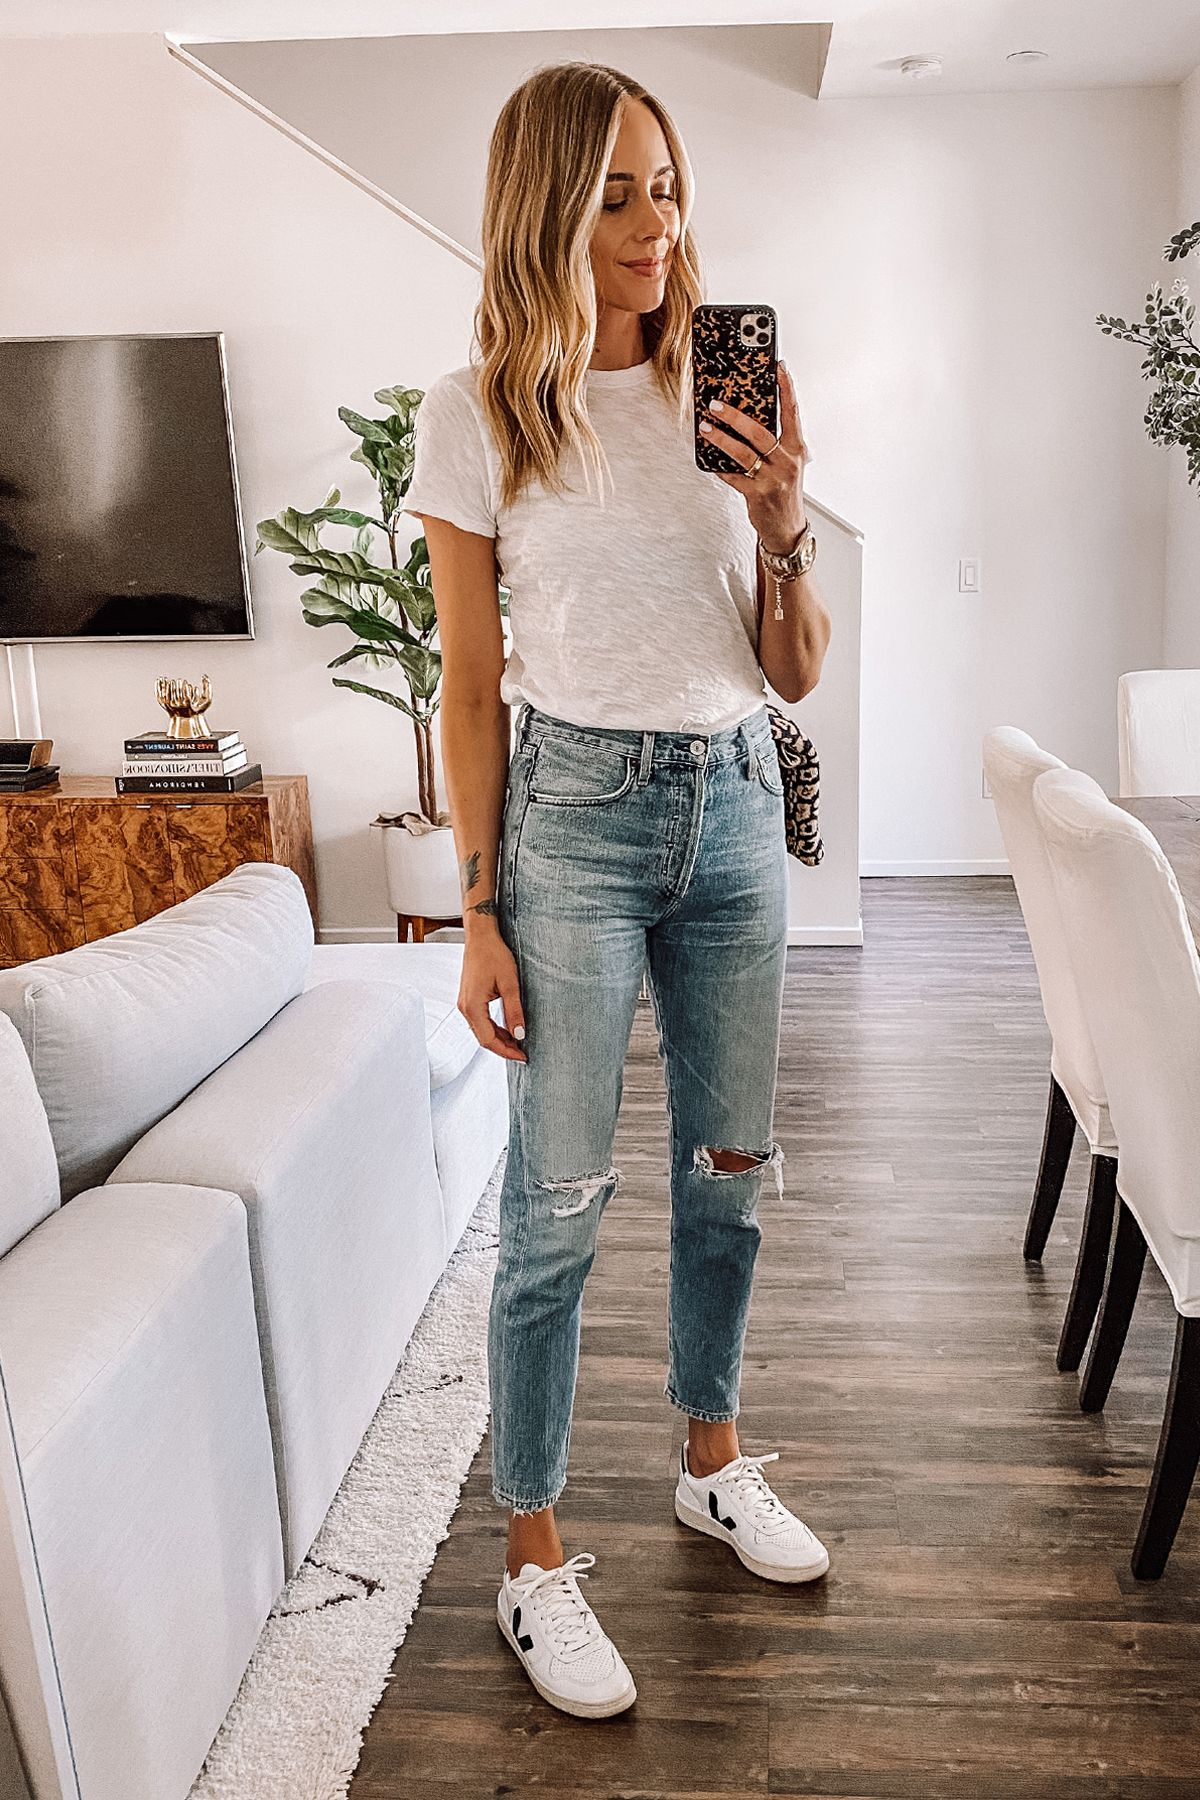 Photo of Ripped Jeans, Jeans and t-shirt, Easy outfit, Sneakers and Jeans